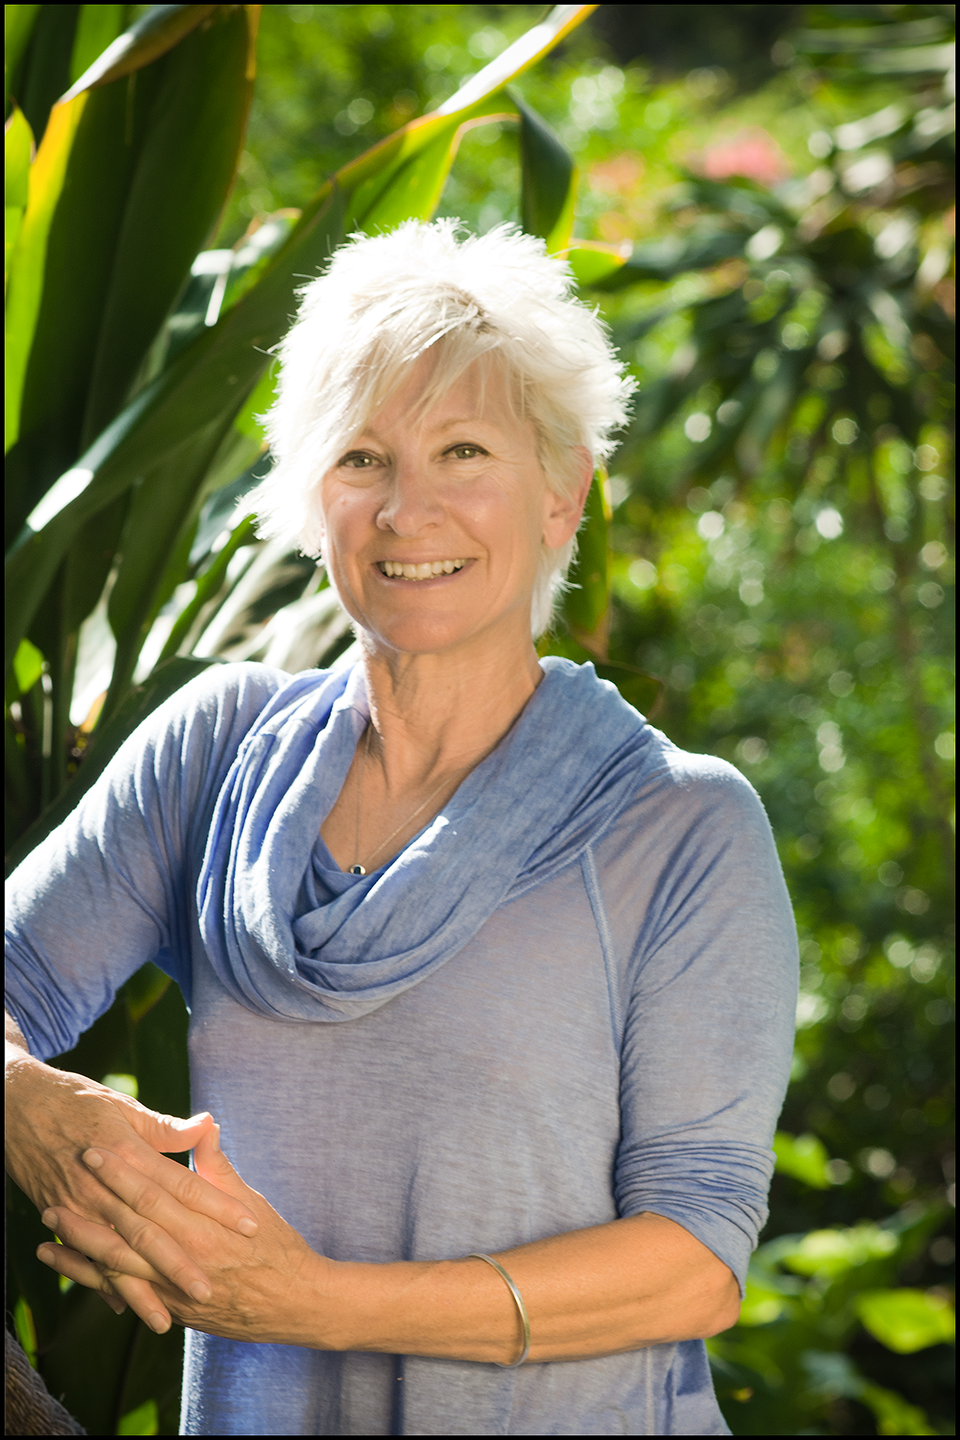 Dori Frame, owner of Bright Blue Moment, is a life-coach in Honolulu Hawaii.